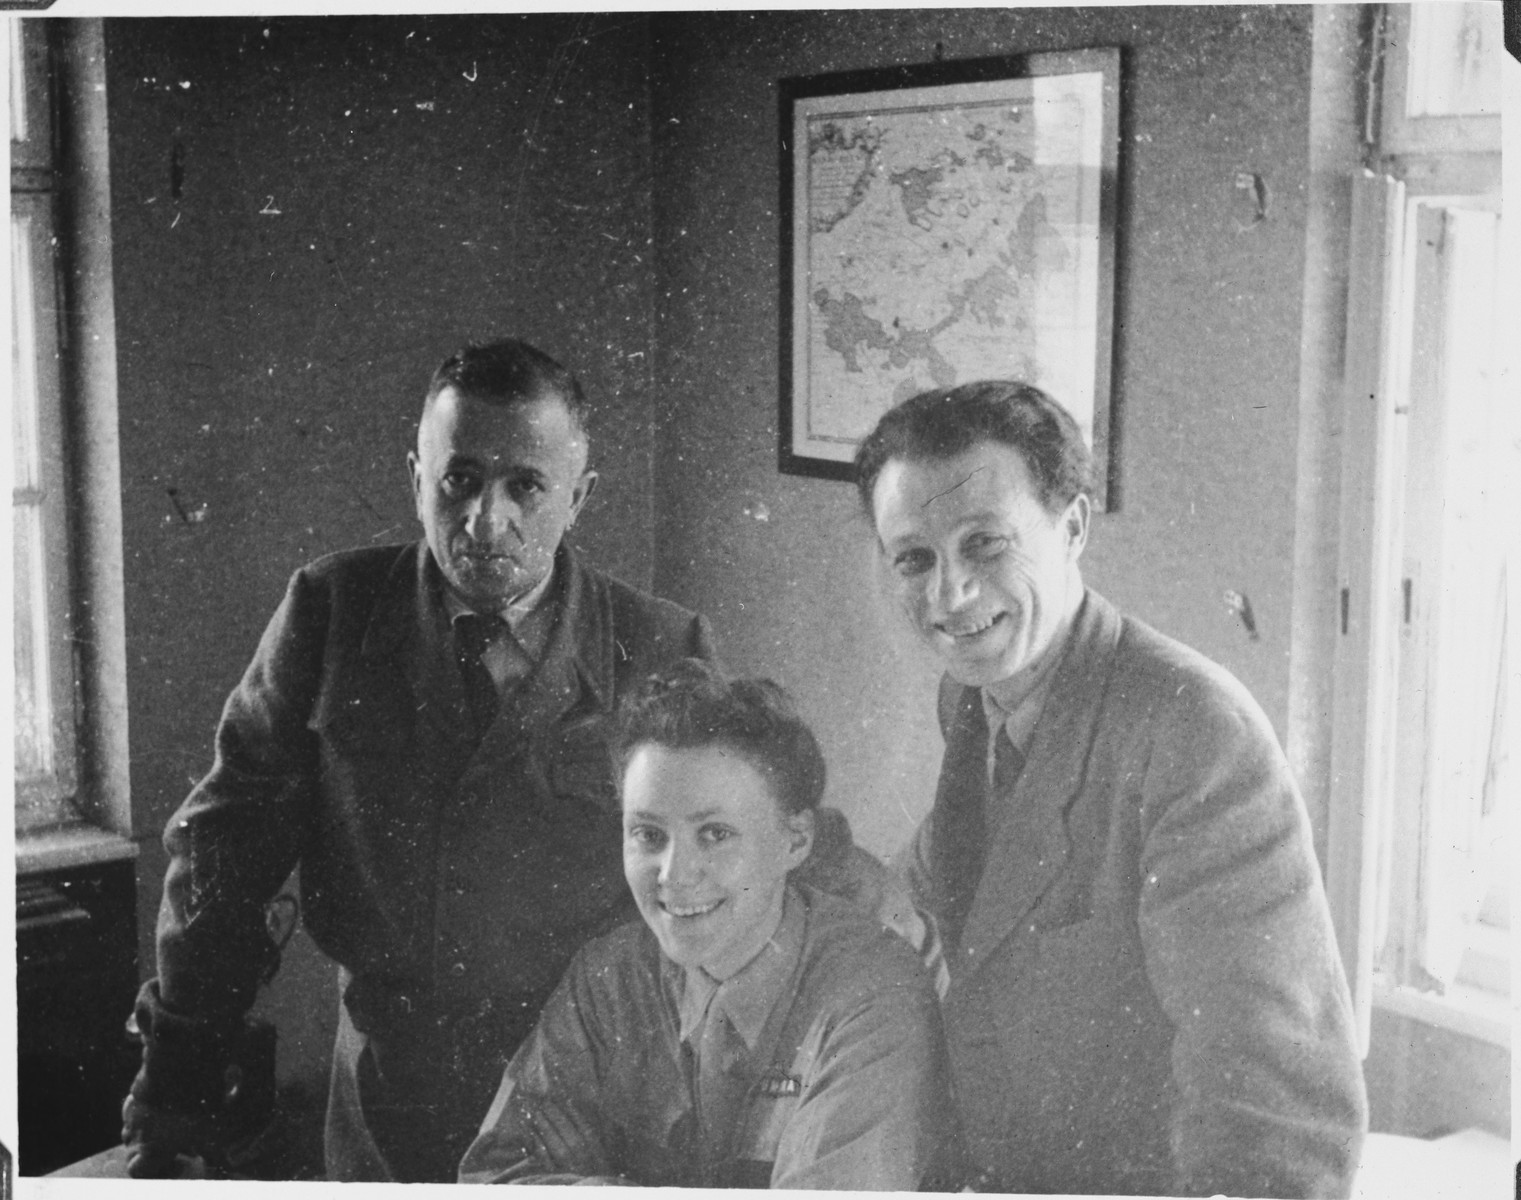 The Jewish administrator of the Windsheim displaced persons' camp (right) meets with UNRRA worker, Marion Pritchard an danother man.